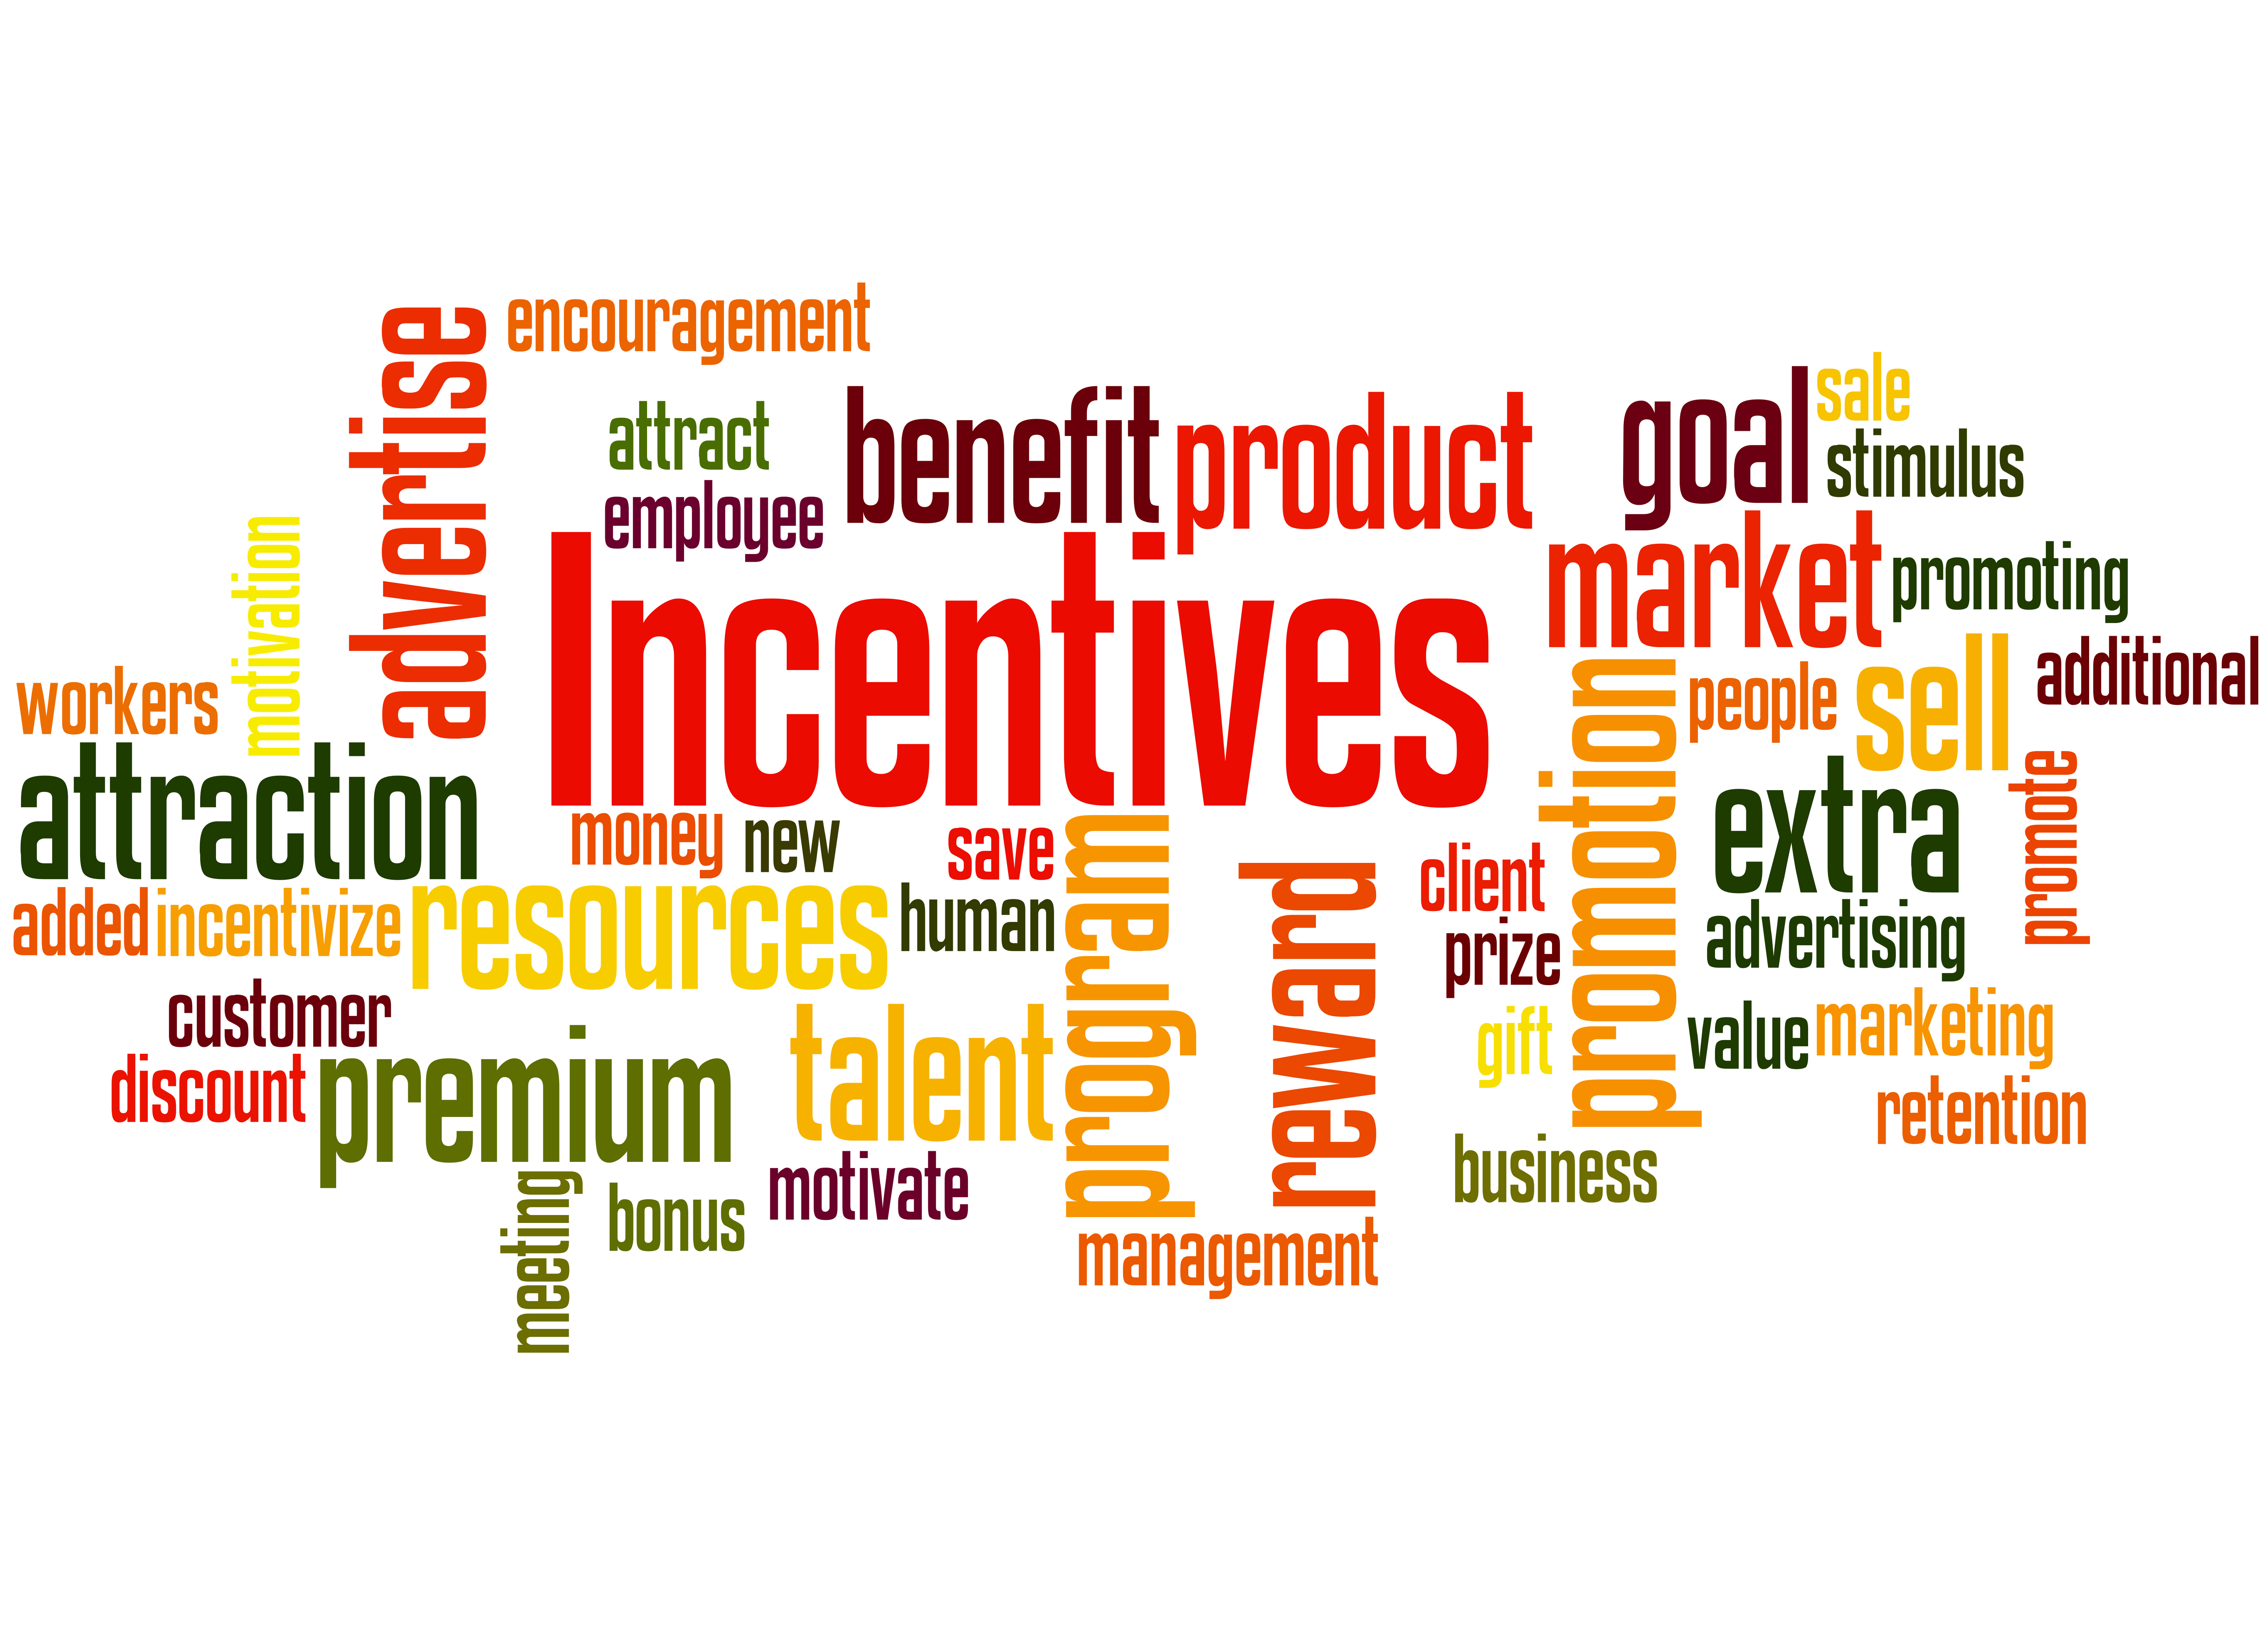 IDG Survey Shows Growing Interest in Incentive Program Management Software